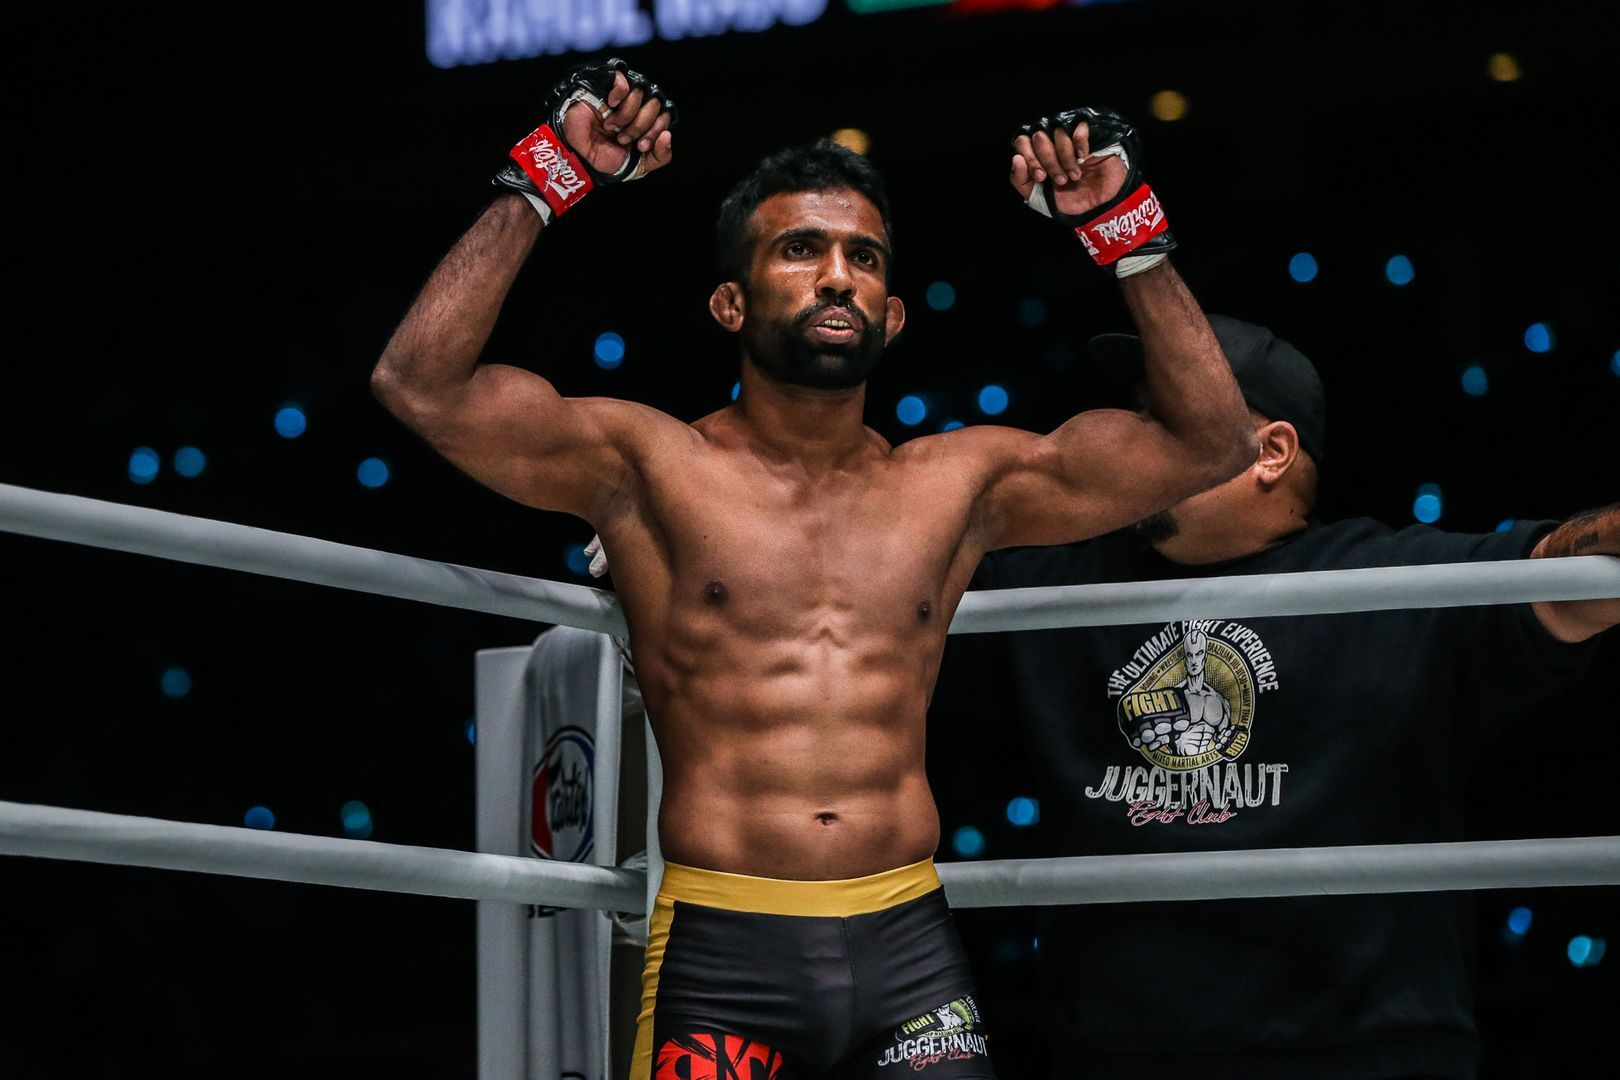 Indian MMA Star Rahul Raju On Fighting Amir Khan: 'I Think I'll Break Him' - Rahul Raju